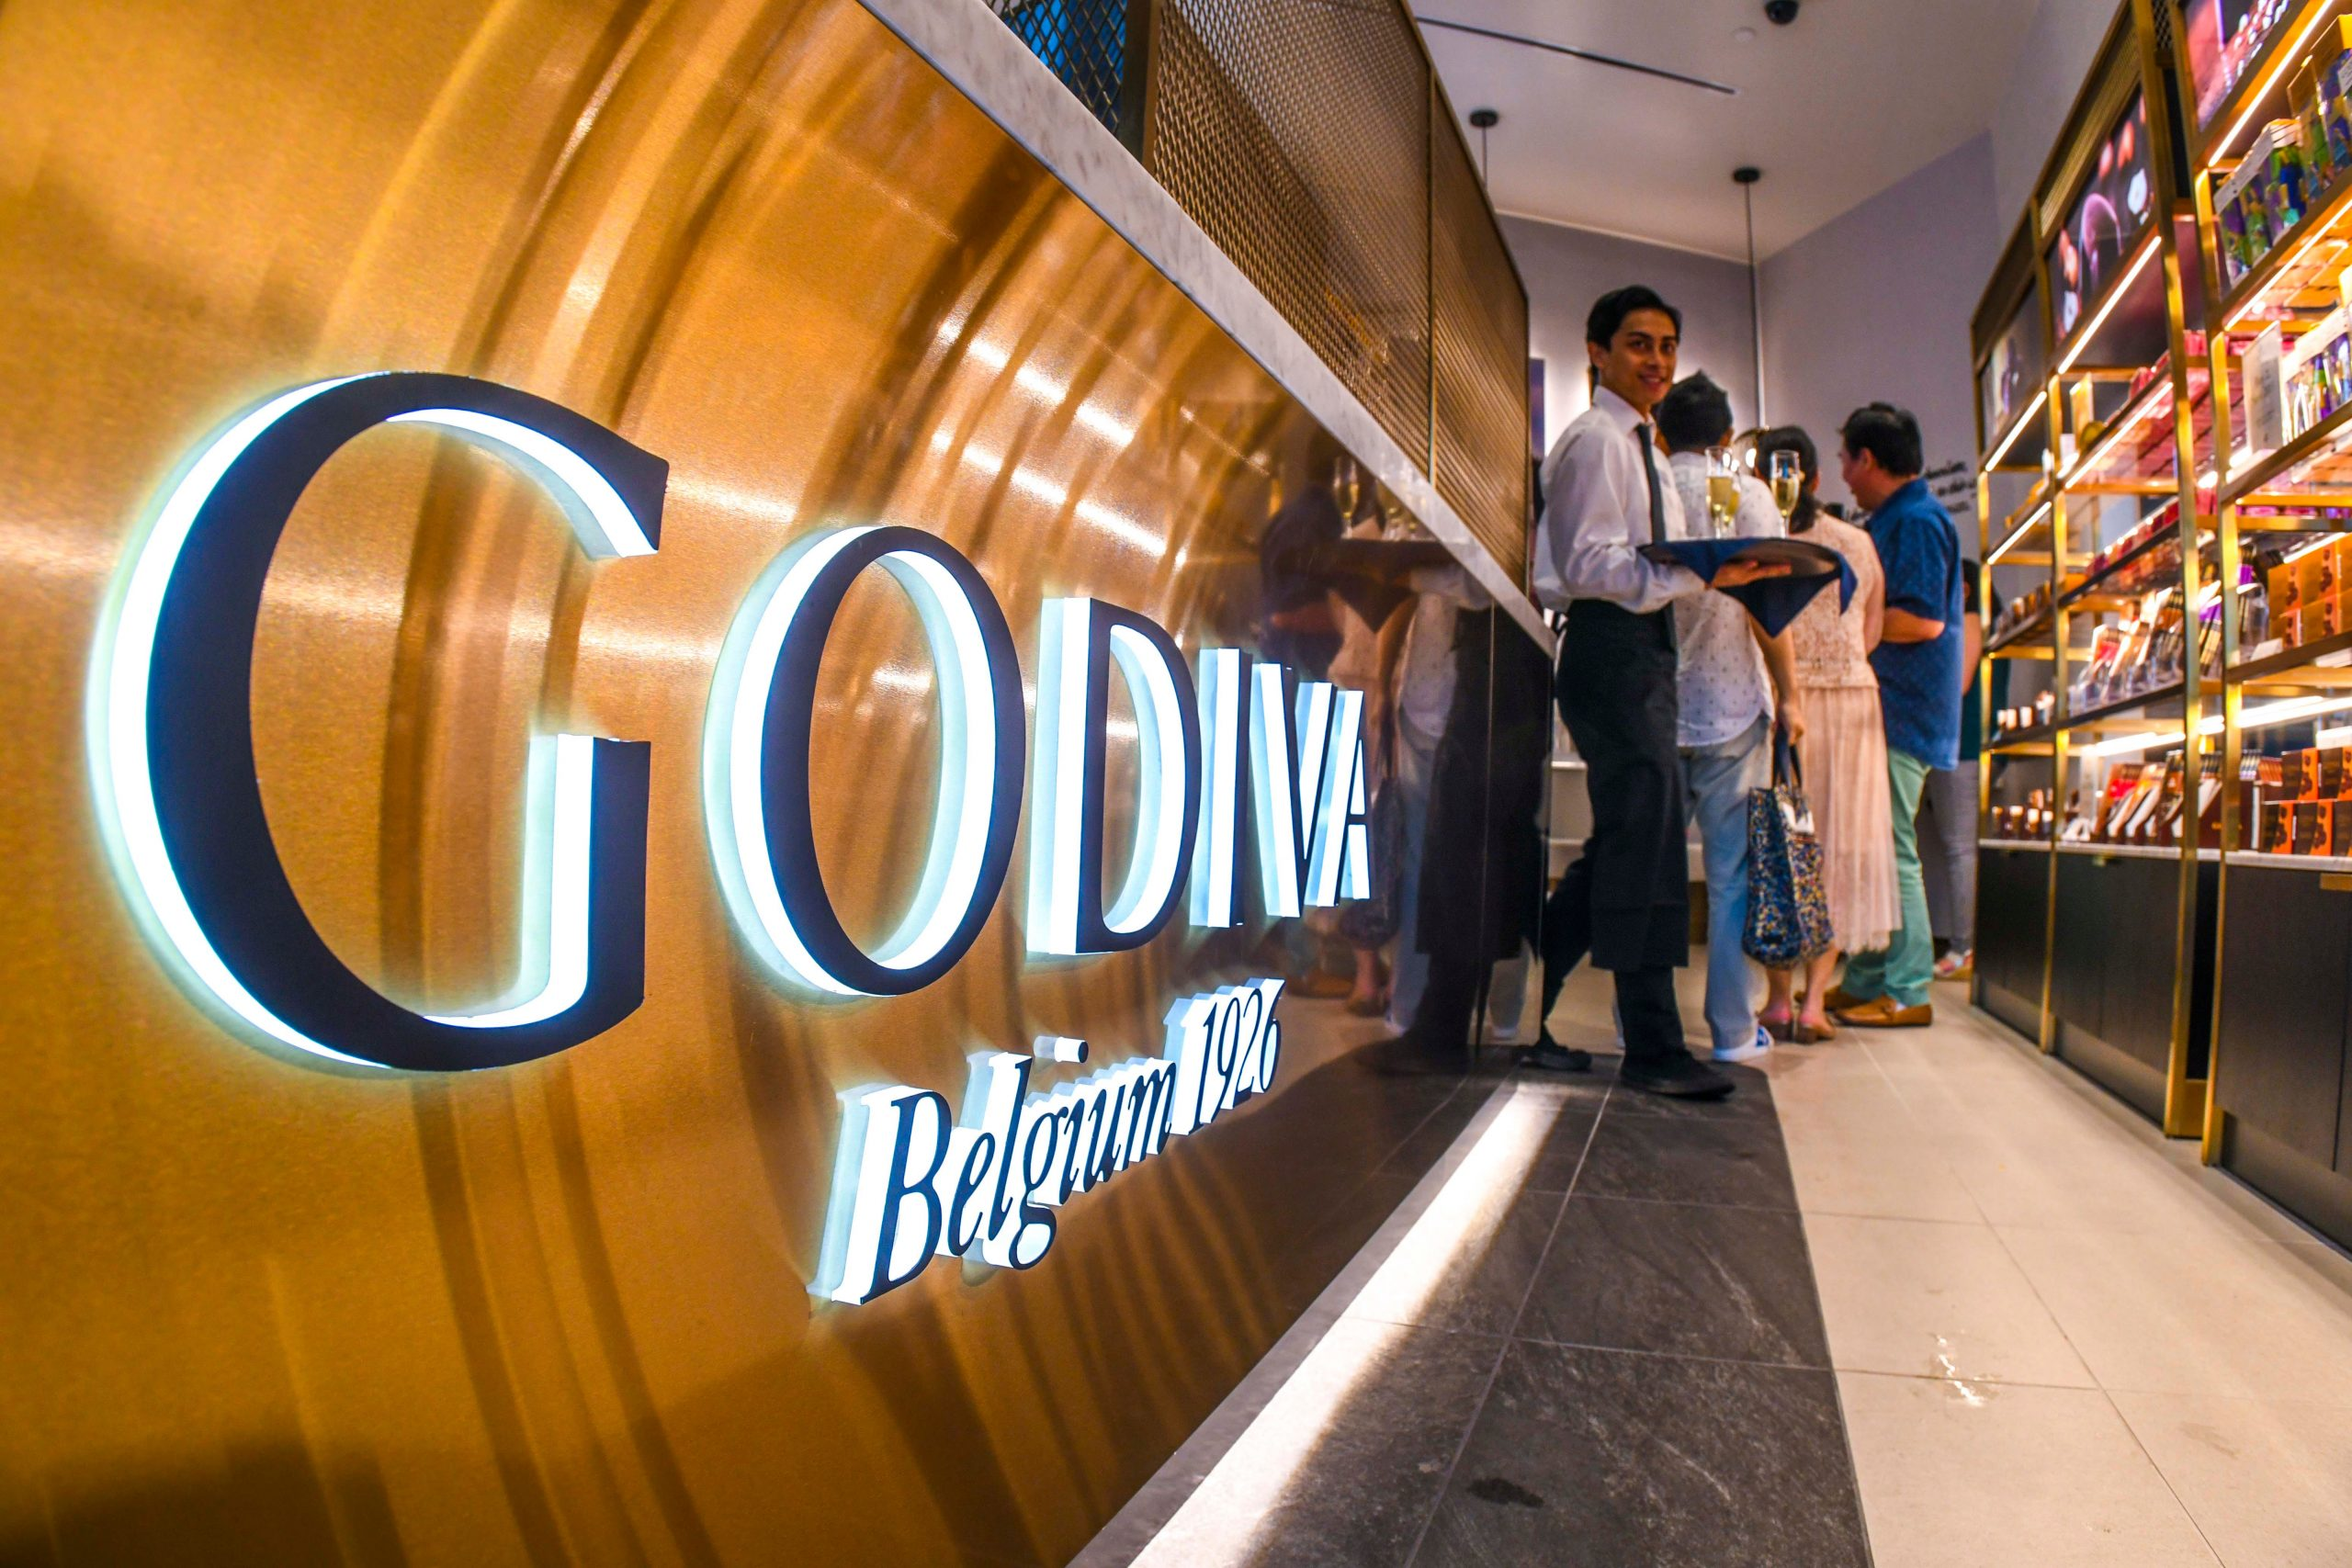 Godiva to close its boutiques by end of March. Chocolate will be sold online, other stores.